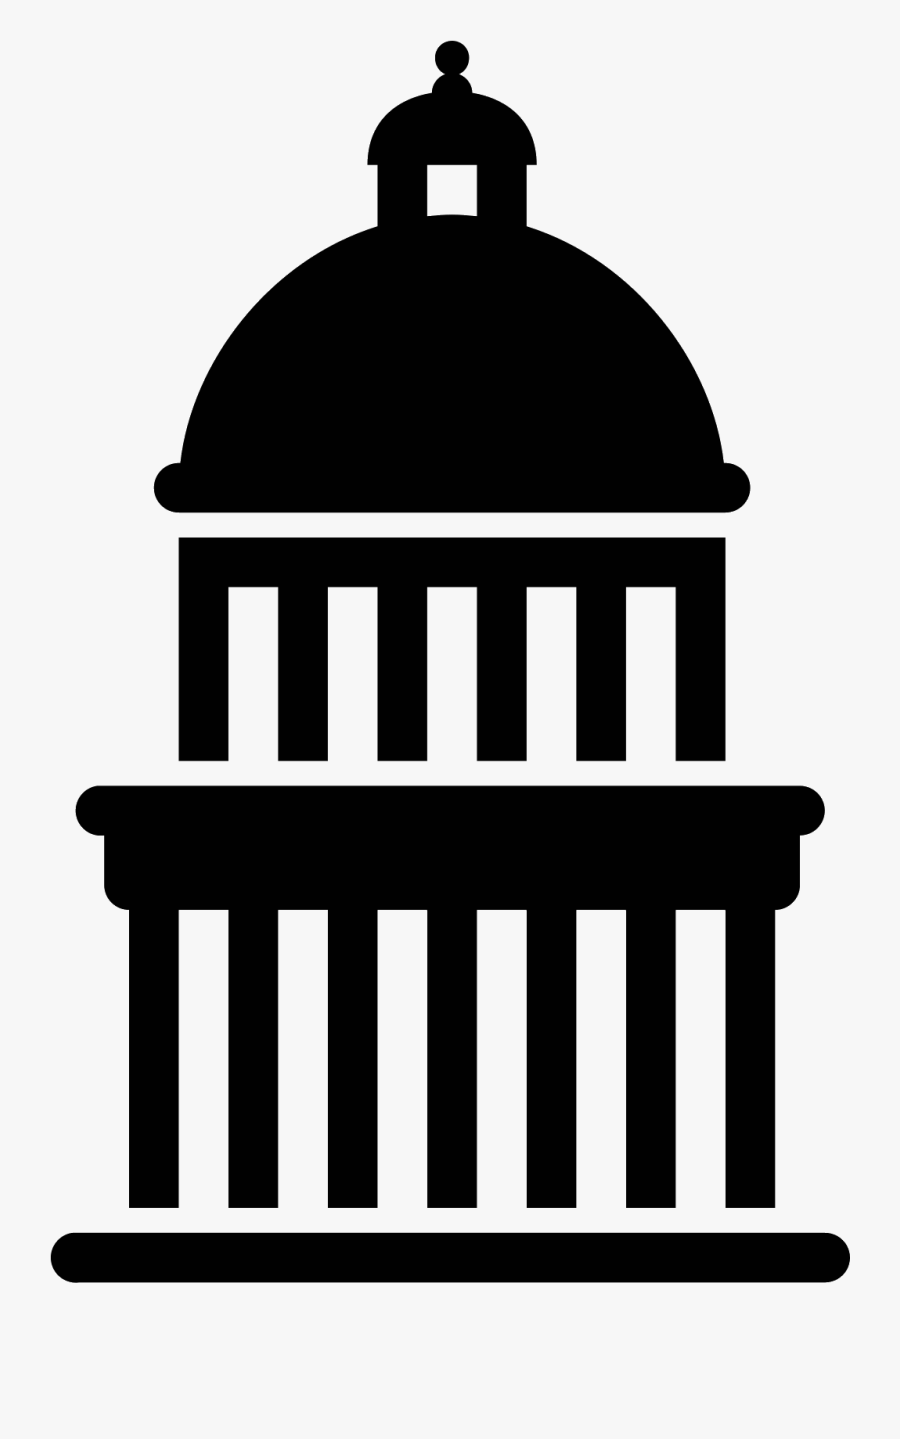 Government Icon Png - Government Icon, Transparent Clipart